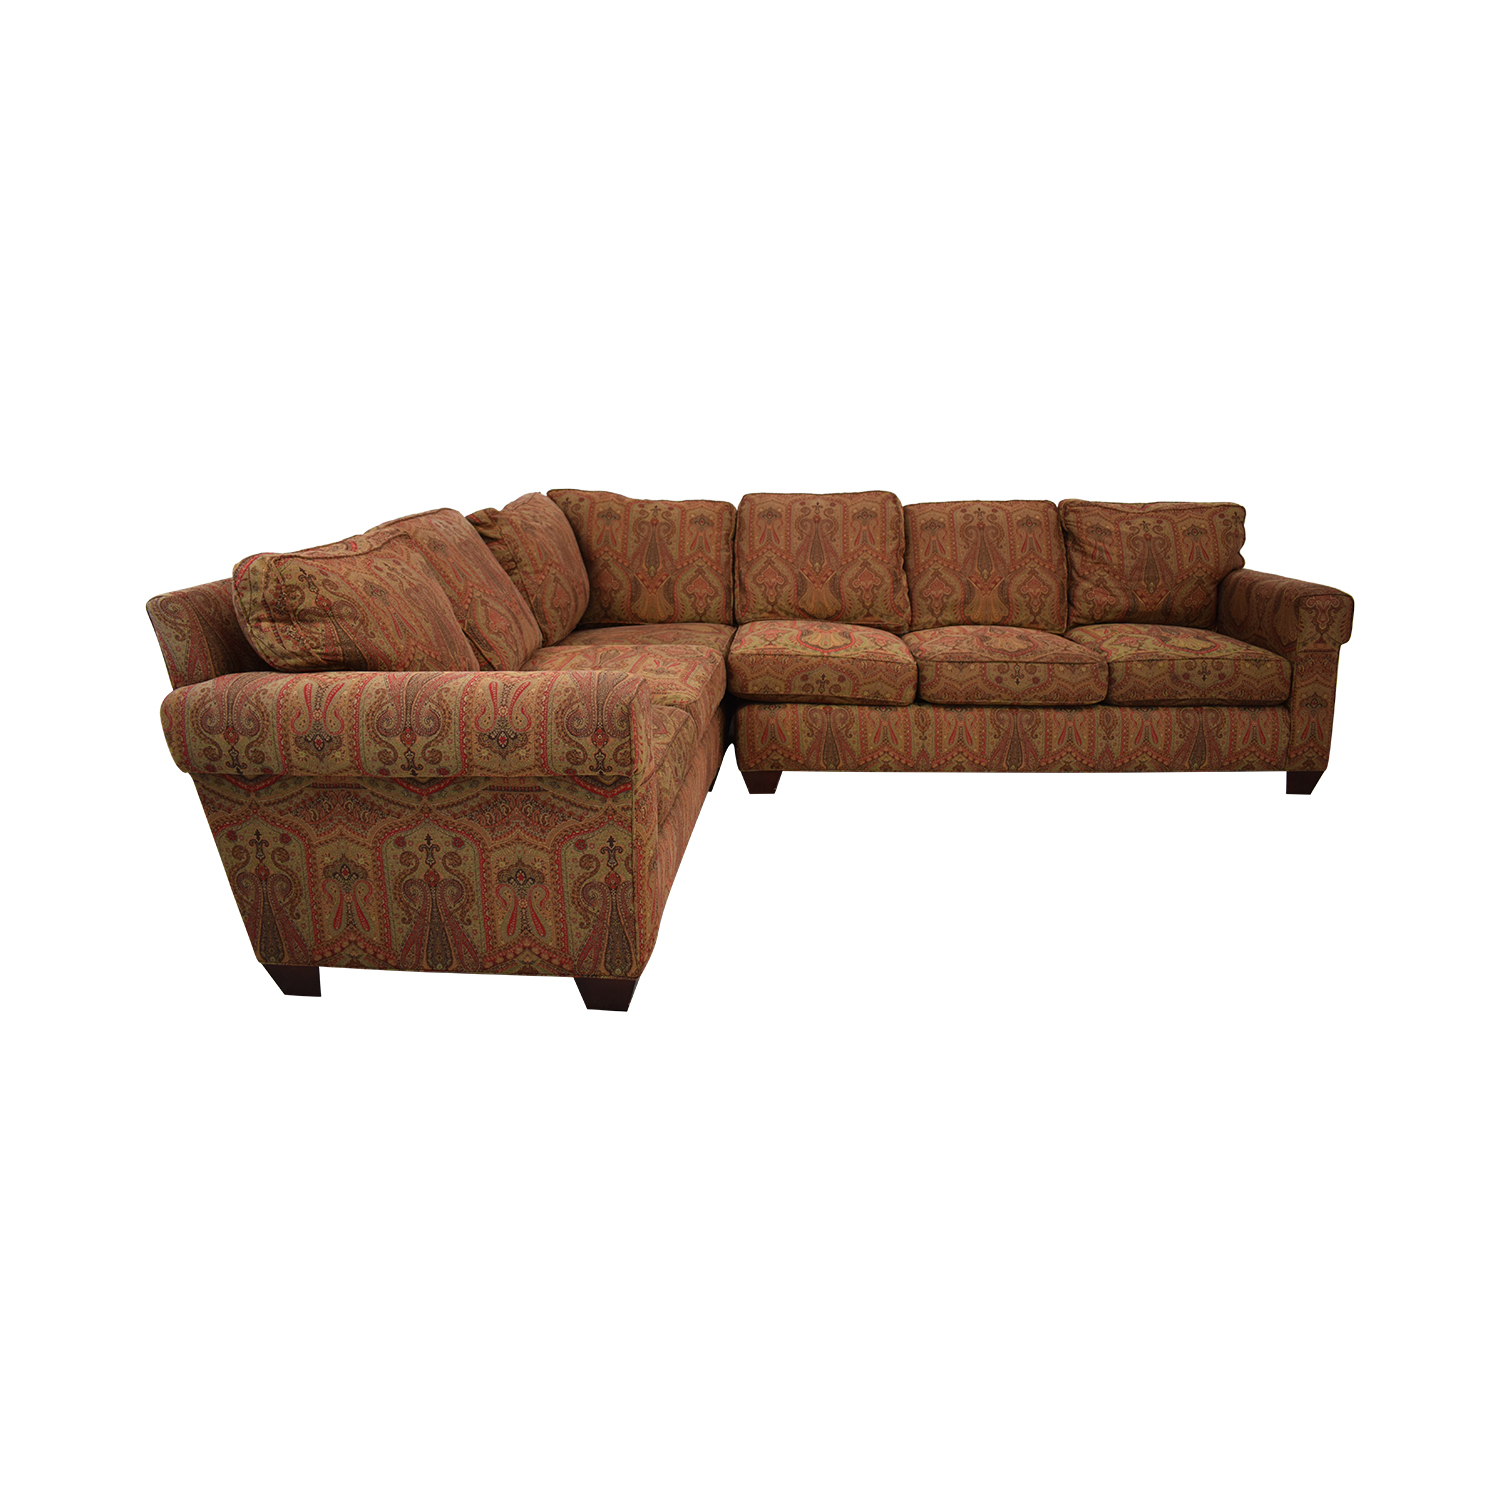 Baker Furniture Baker Furniture Milling Creek Sectional Sofa price